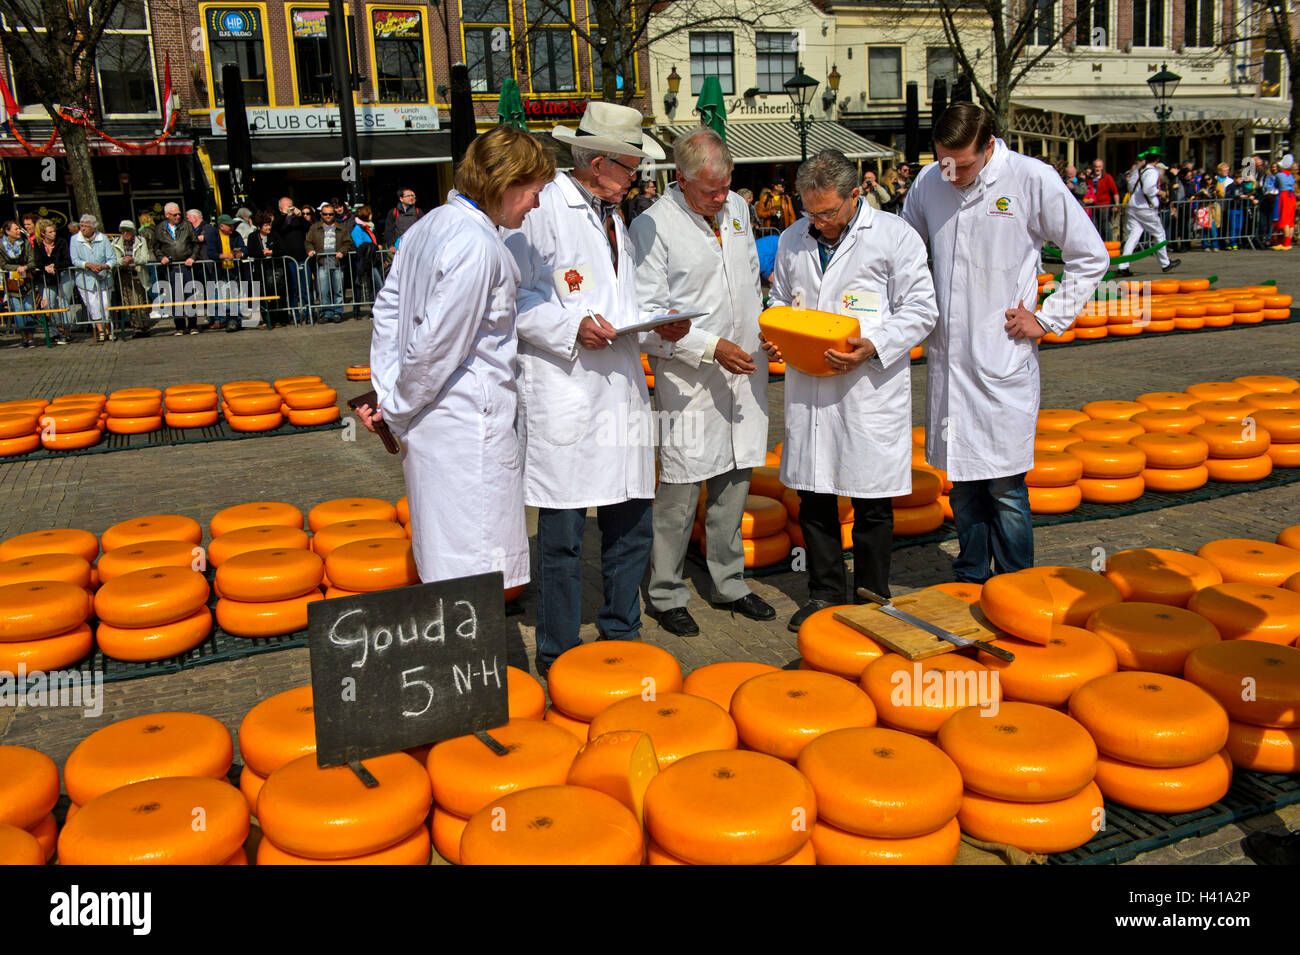 Cheese inspectors examine truckles of Dutch Gouda cheese at the cheese market in Alkmaar, Netherlands - Stock Image